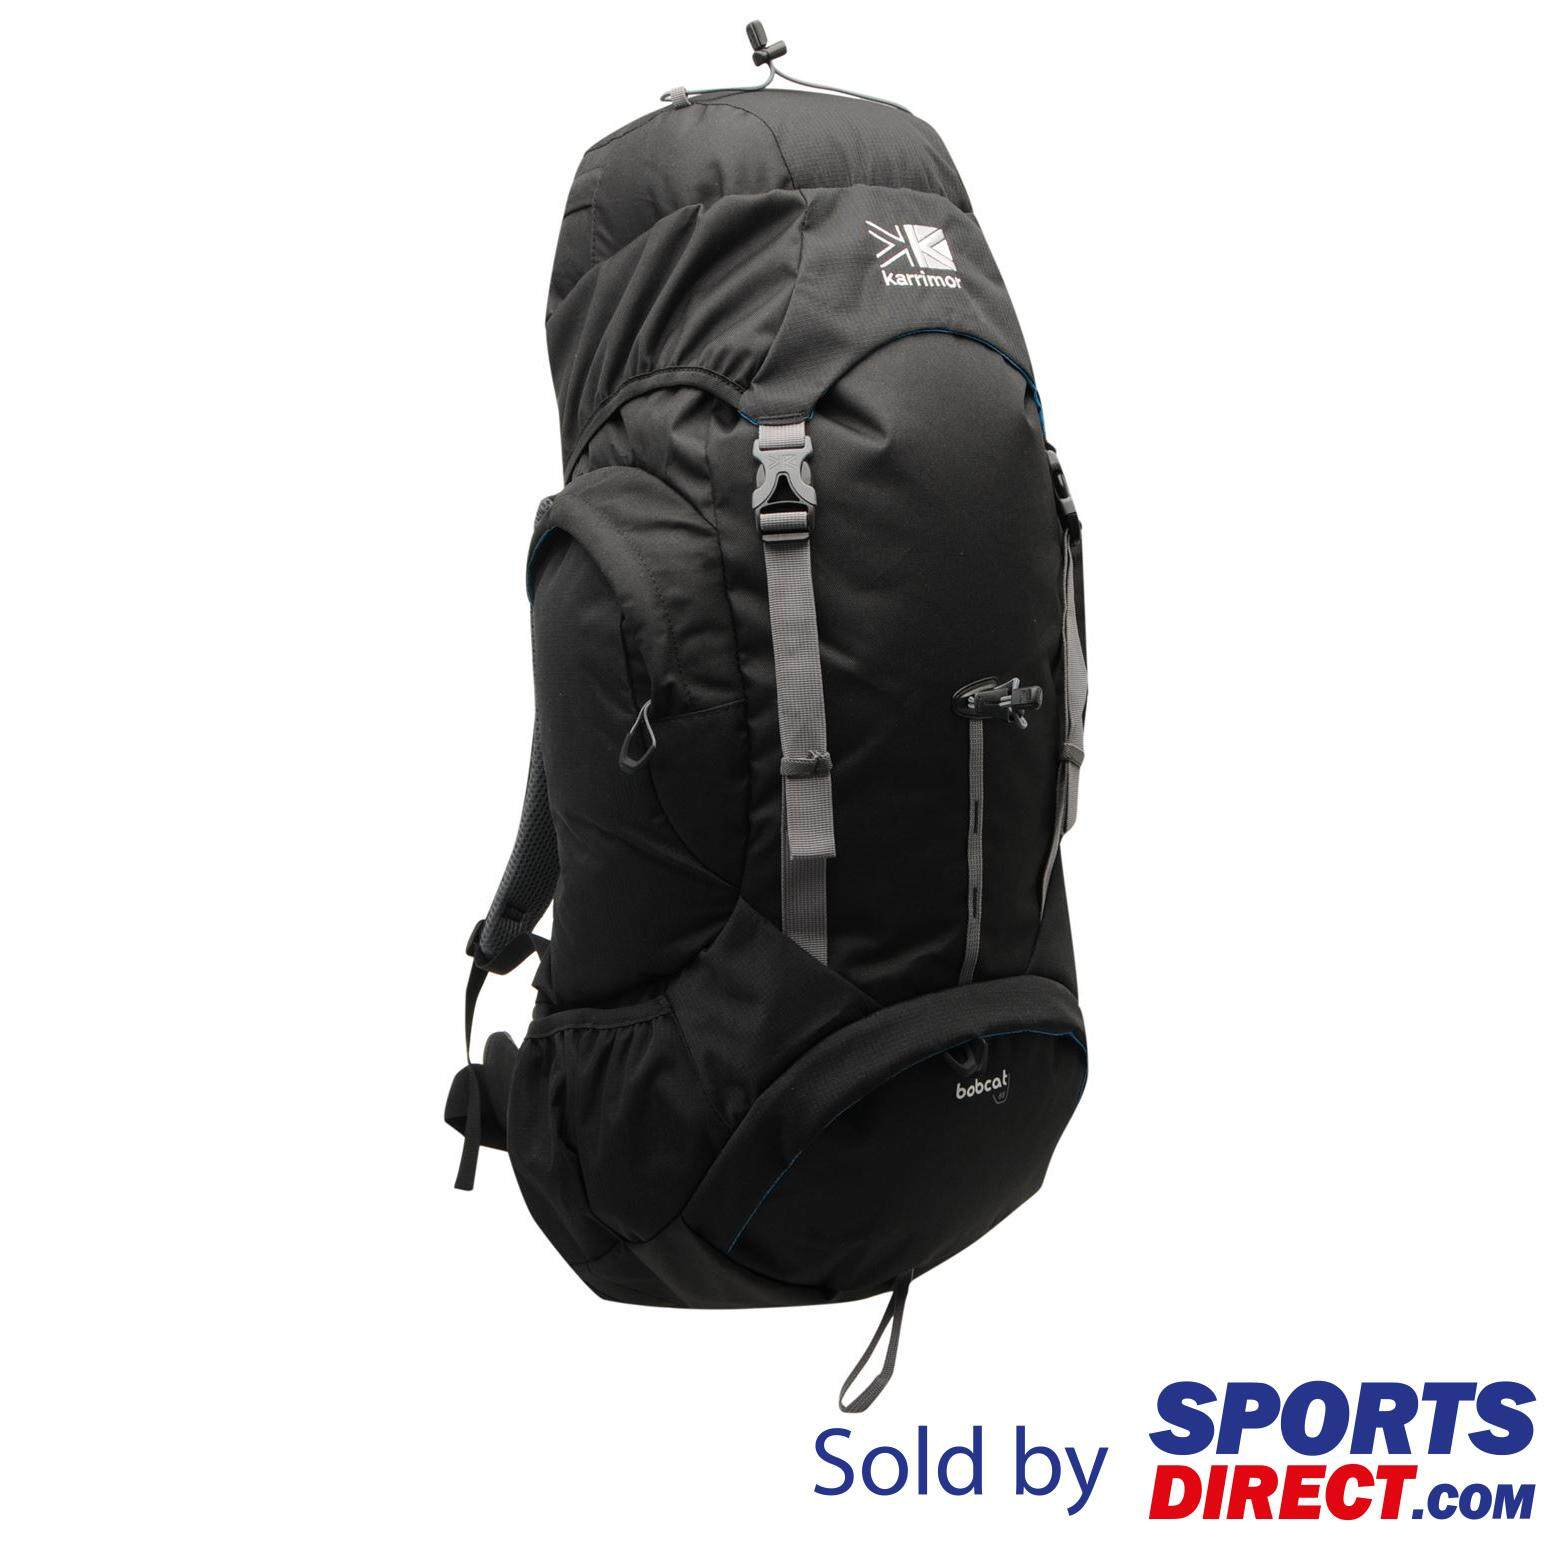 1a1e7803ad KARRIMOR Backpacks price in Malaysia - Best KARRIMOR Backpacks